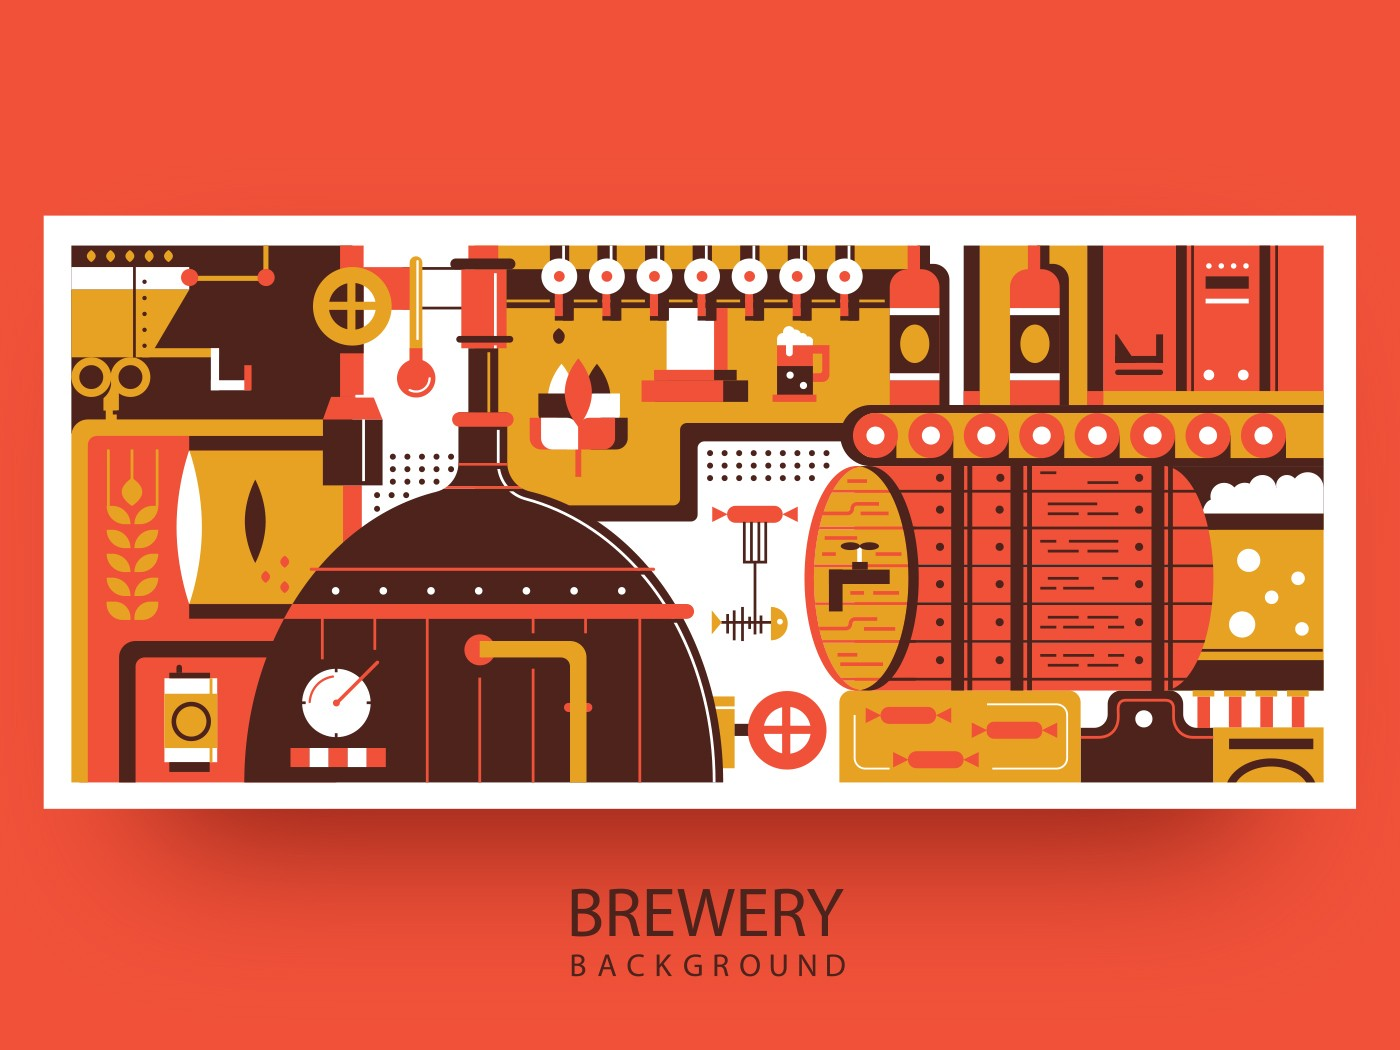 Brewery background flat vector illustration